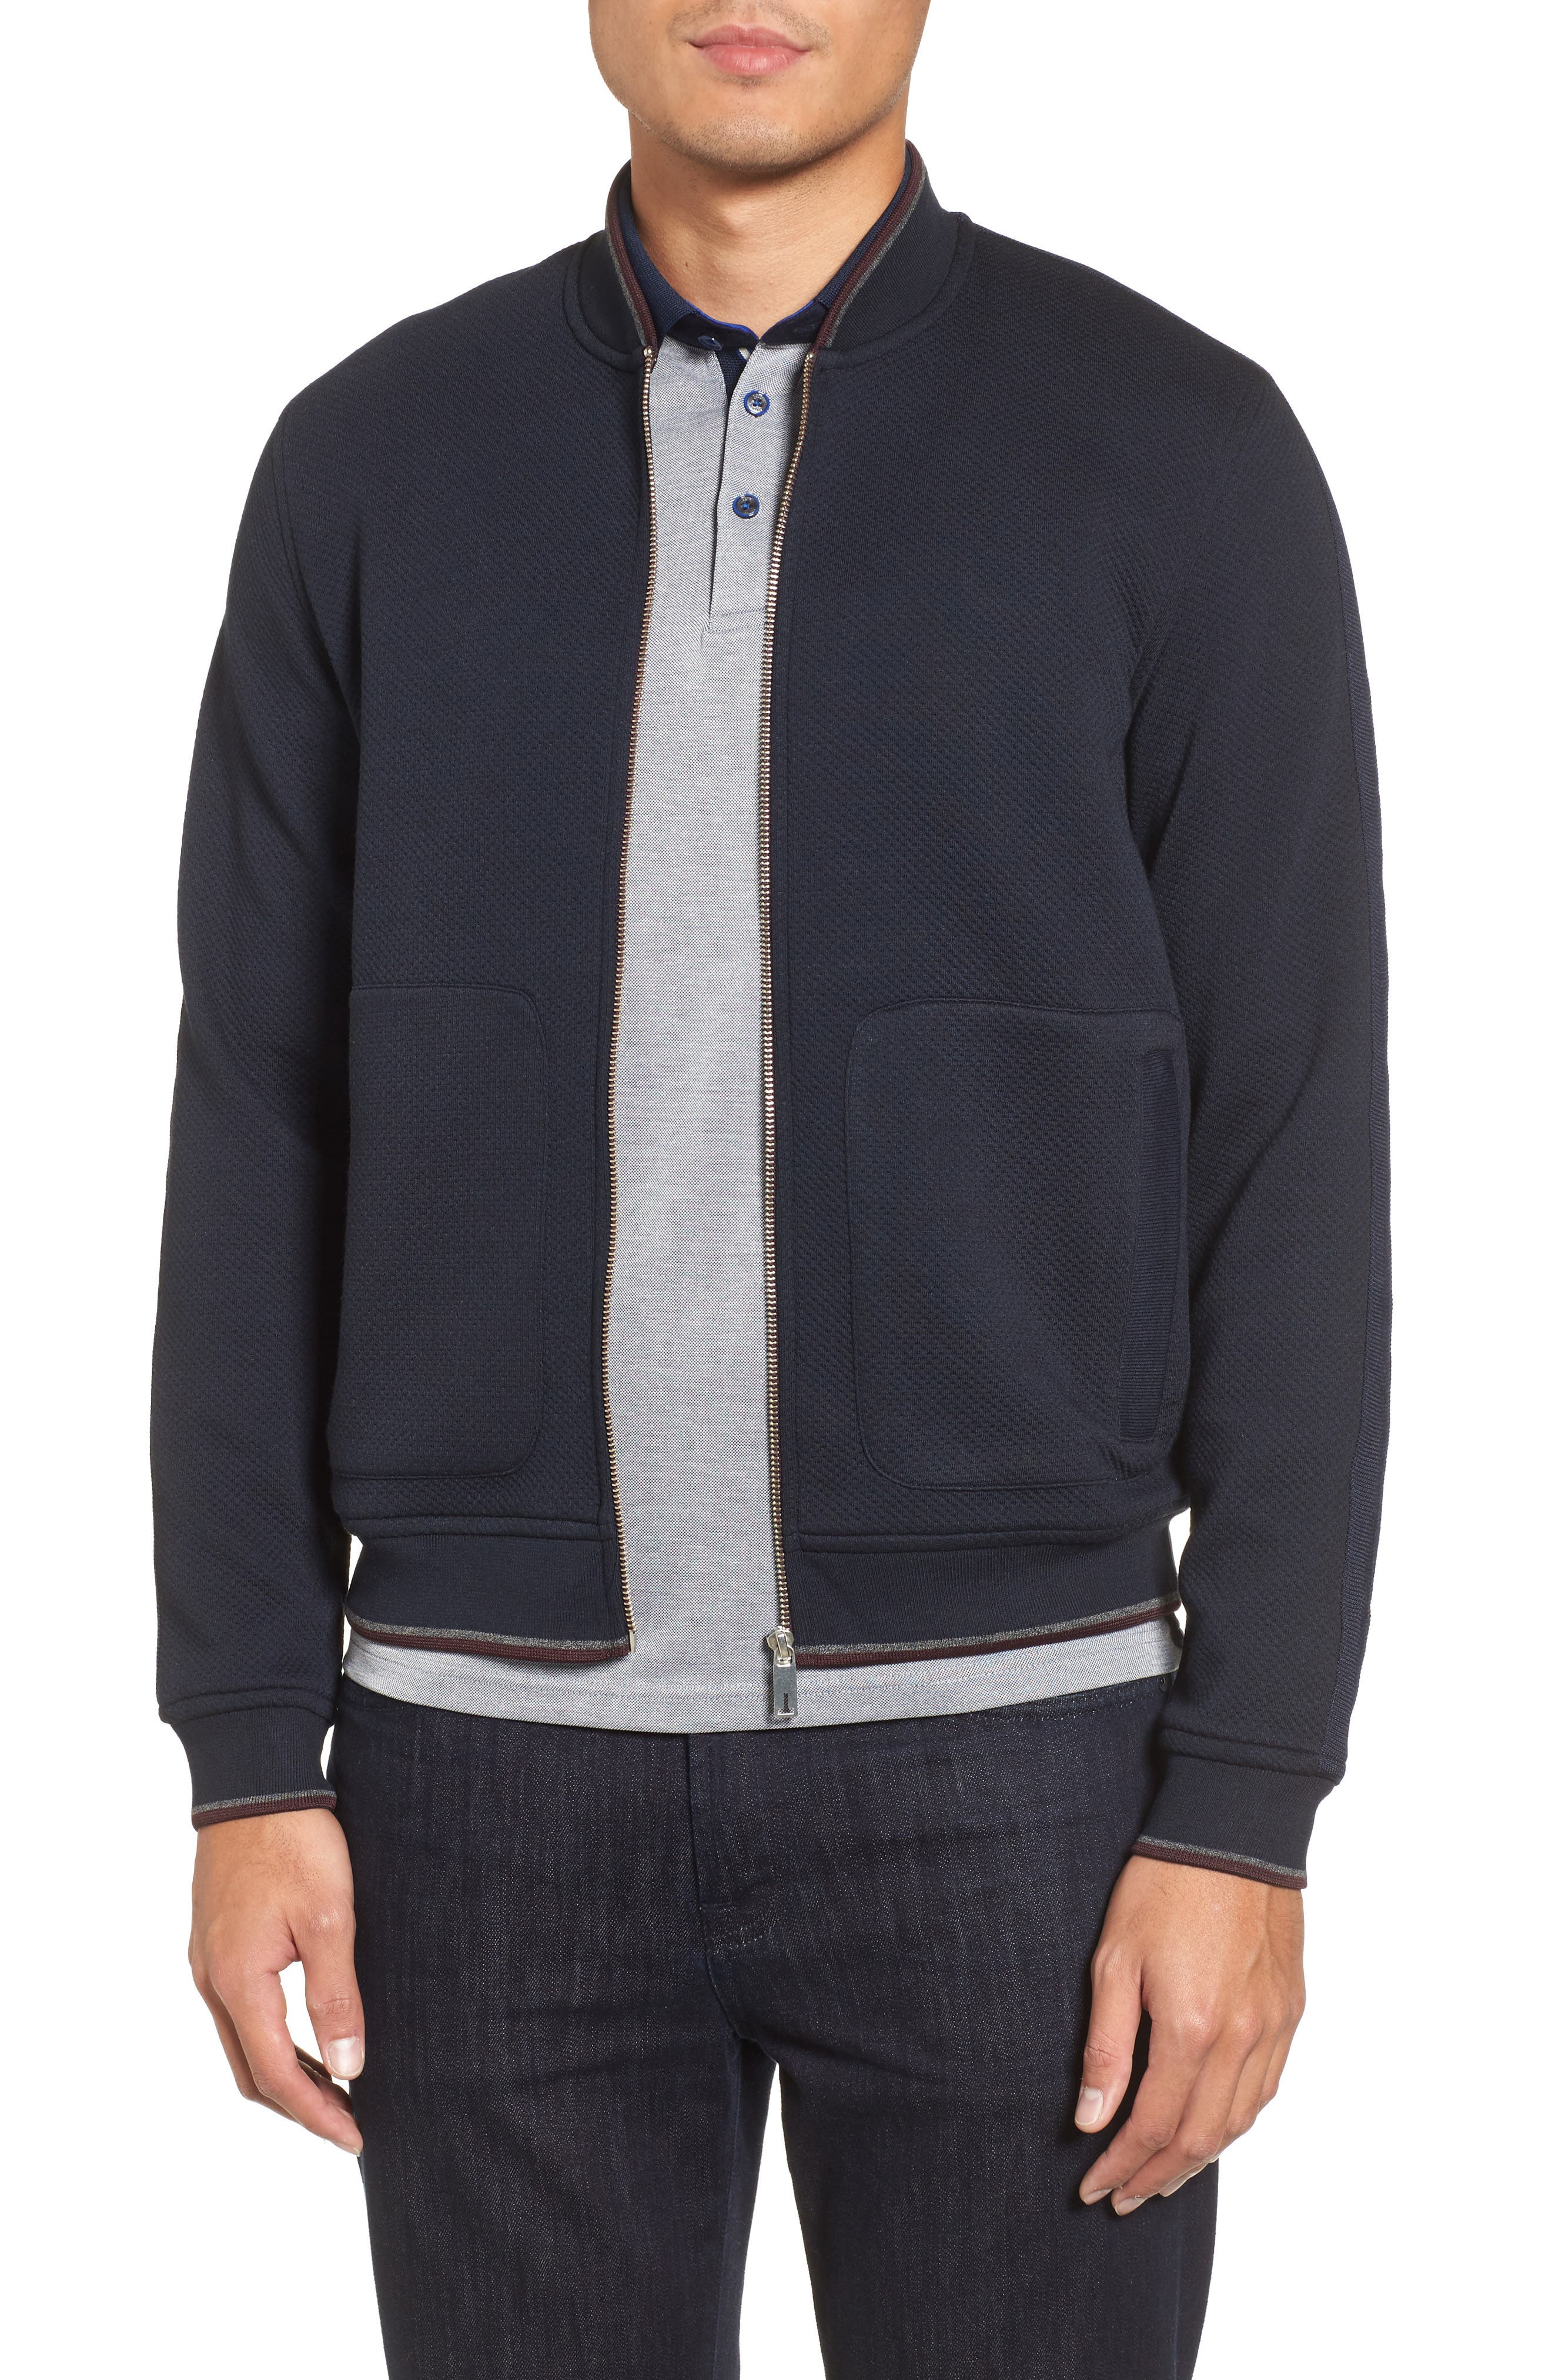 Whatts Trim Fit Textured Bomber Jacket,                             Main thumbnail 1, color,                             410